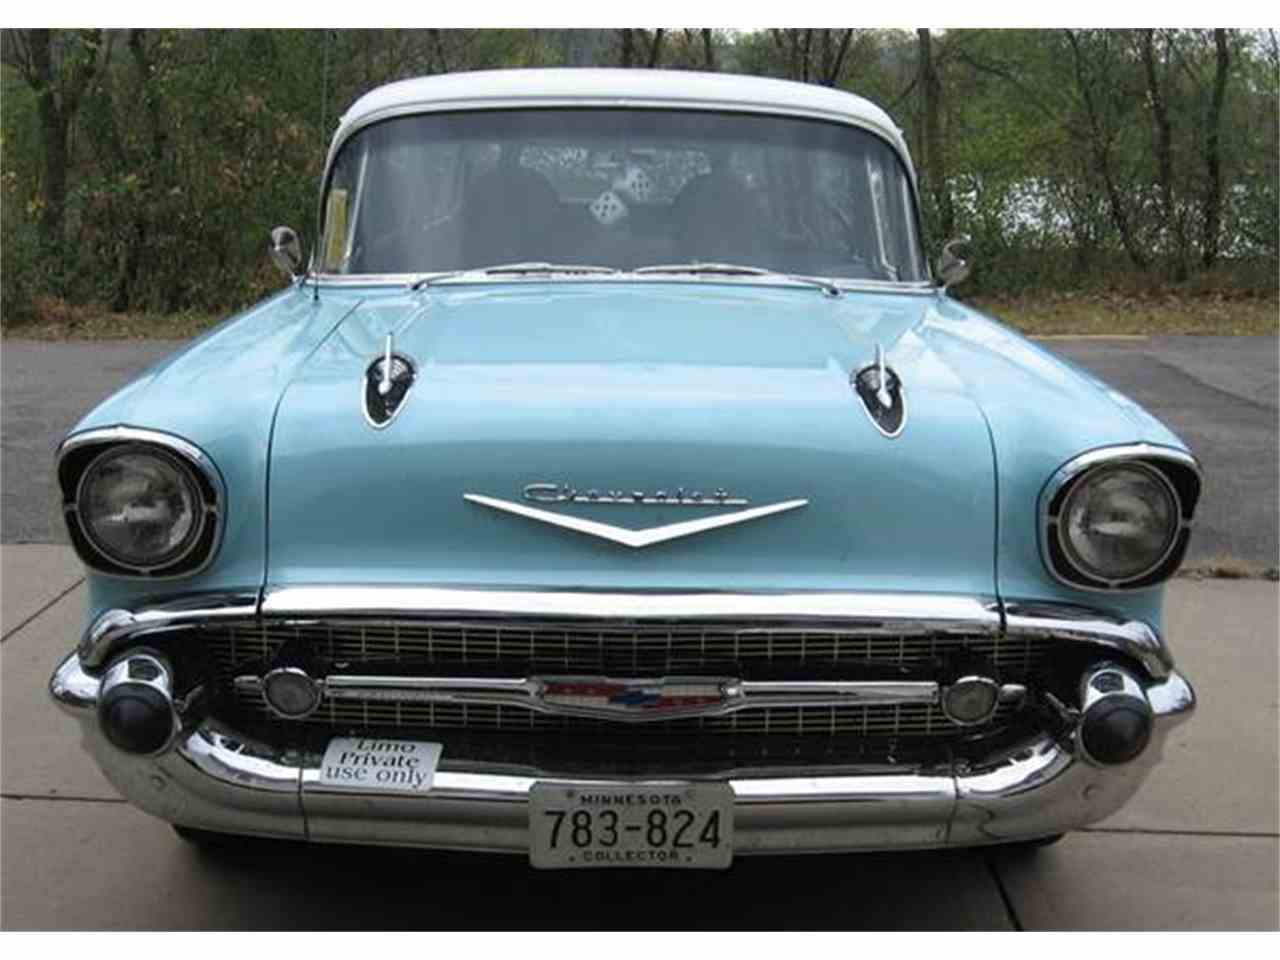 All Chevy 1957 chevy wagon for sale : 1957 Chevrolet Custom Wagon for Sale | ClassicCars.com | CC-877352